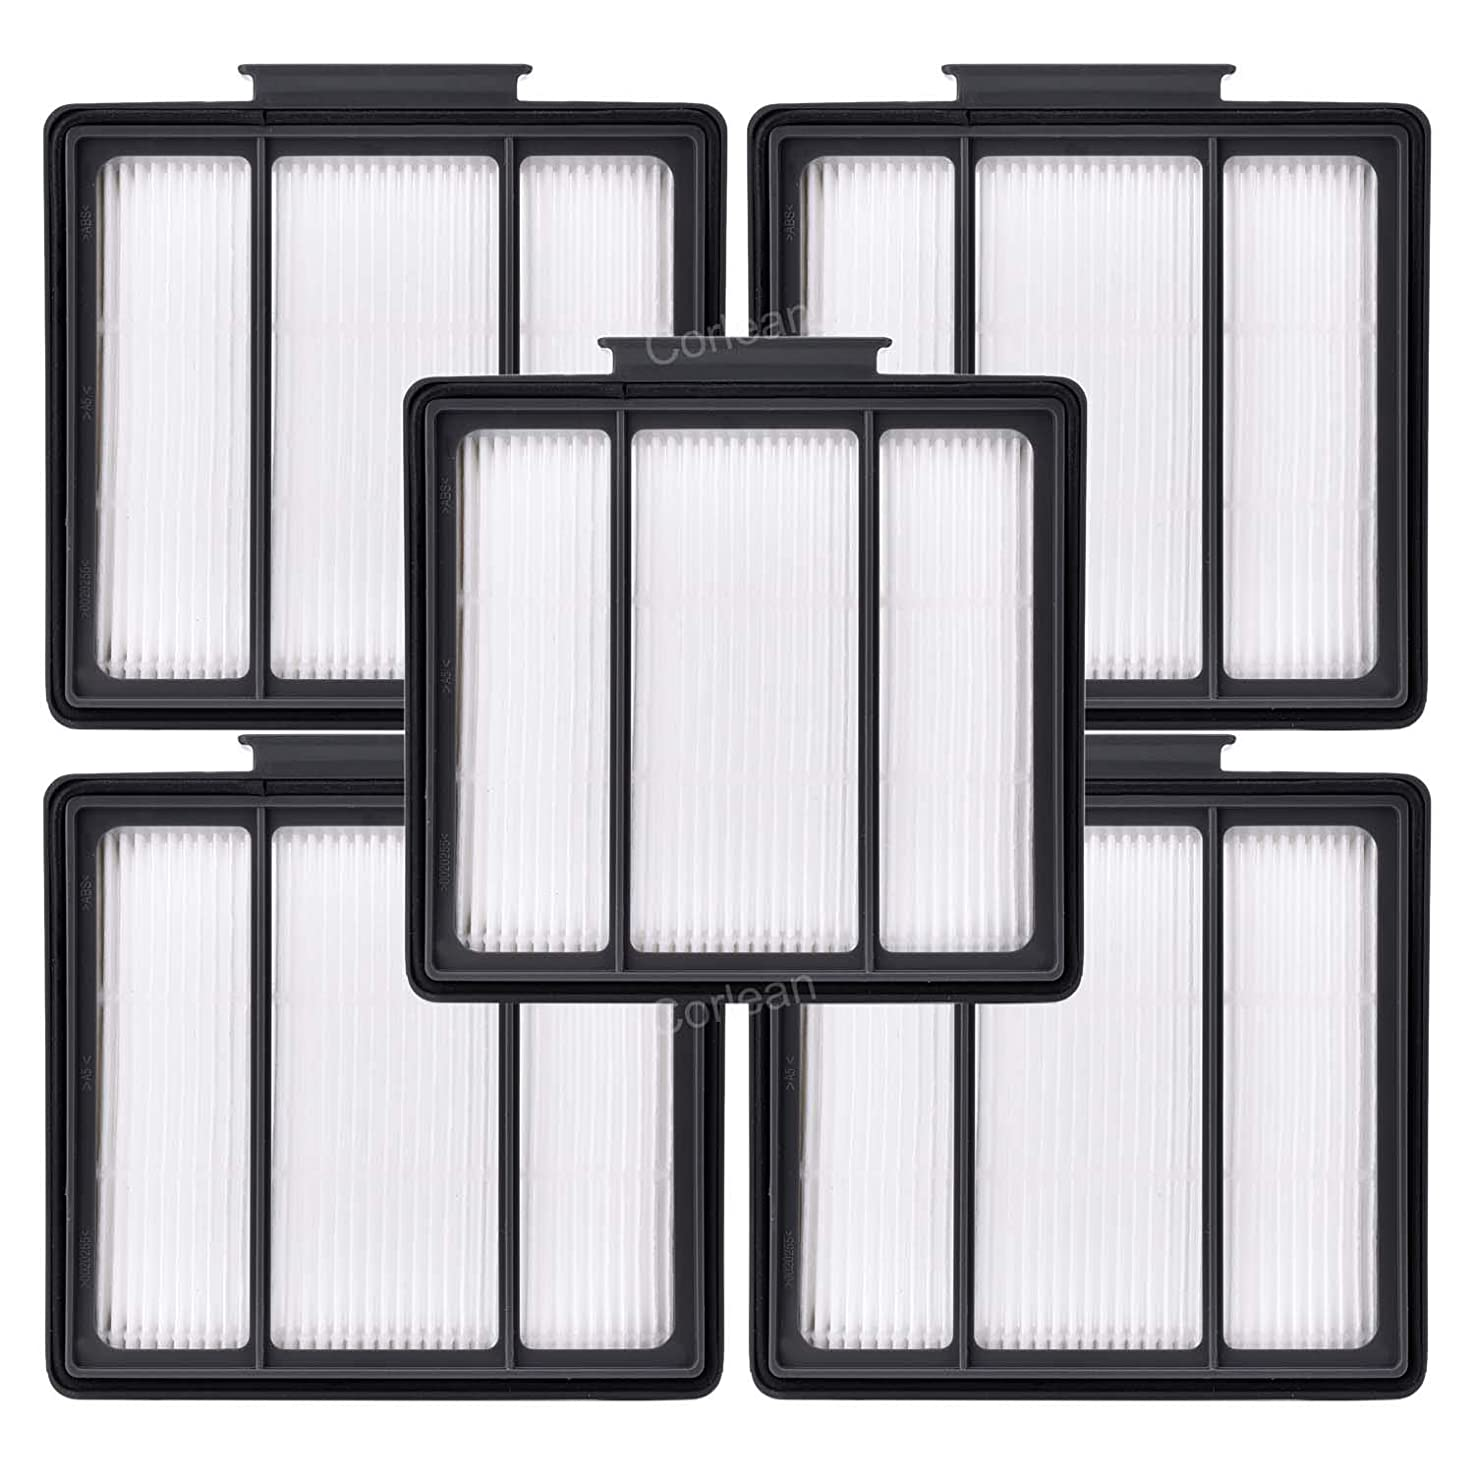 5 Pack Hepa Filters Replacement for Shark ION Robot R85(RV850 & RV850BRN), R71(RV700_N), R72(RV720_N), R75(RV750_N), S86(RV850WV), S87(RV851WV) Vacuum Cleaner